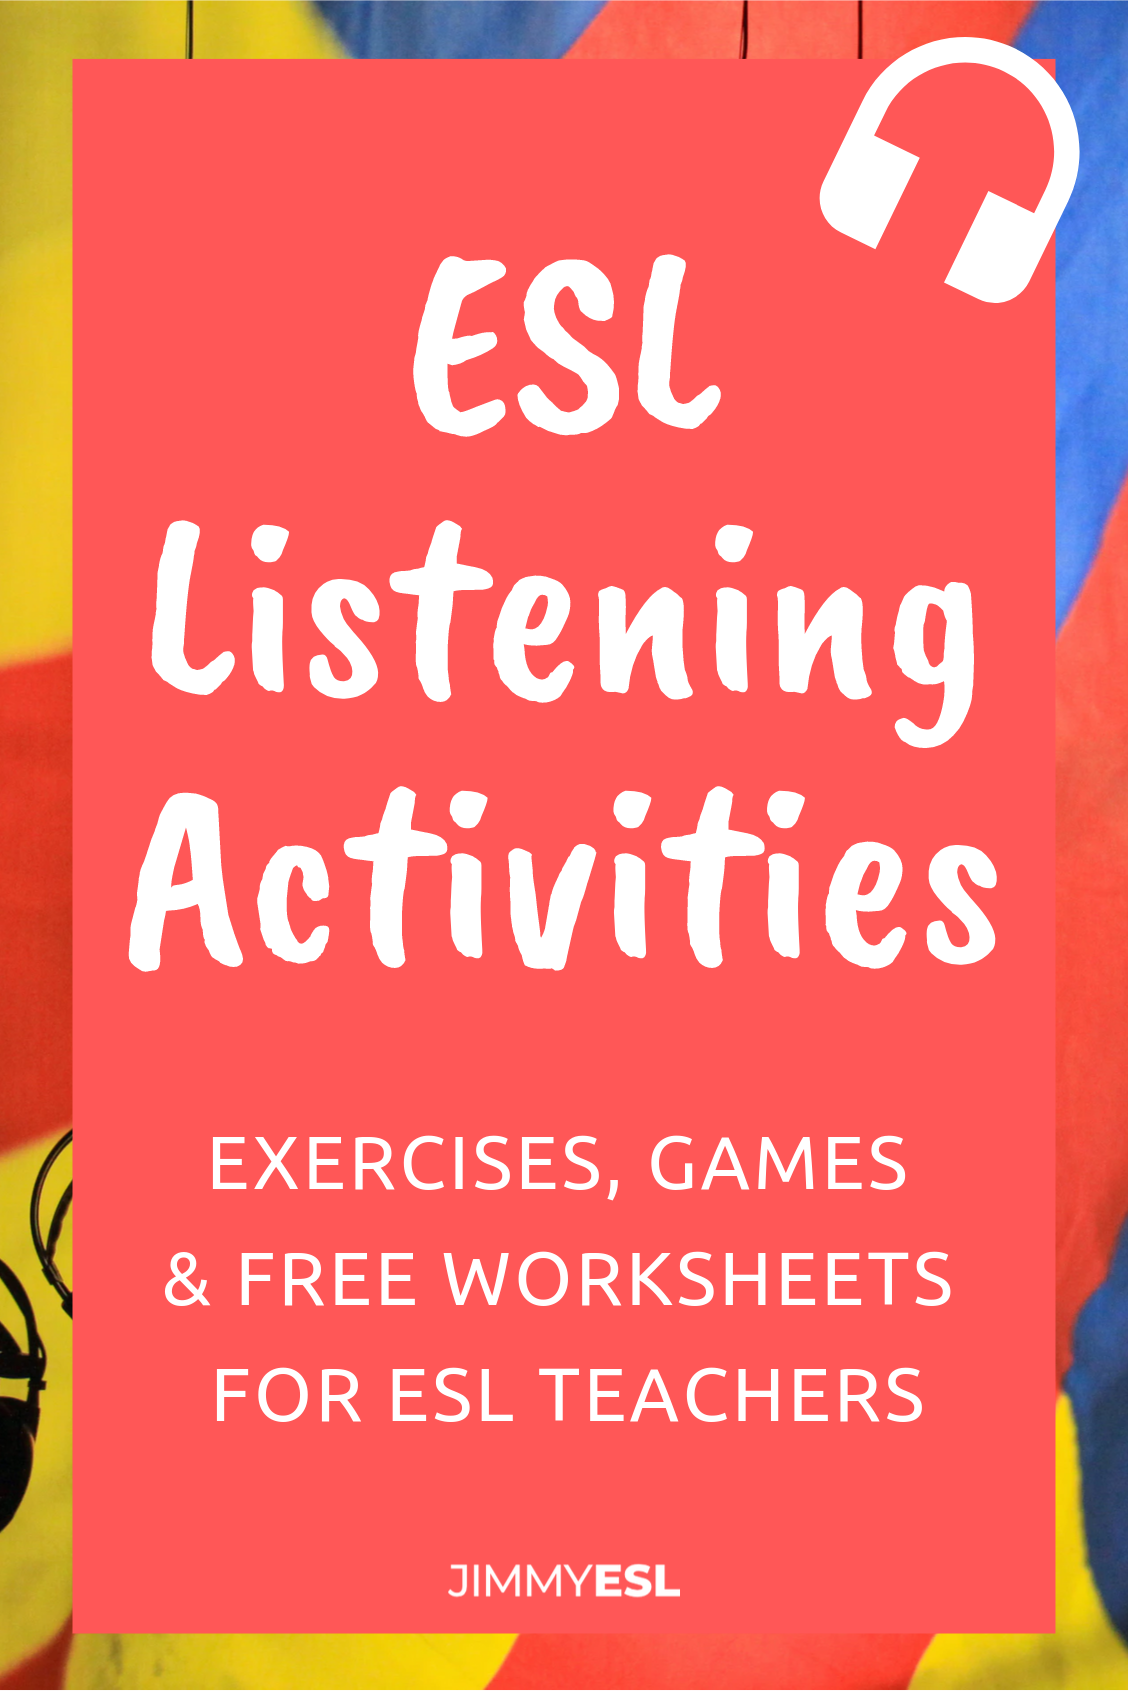 12 Great Esl Listening Activities Free Worksheets In